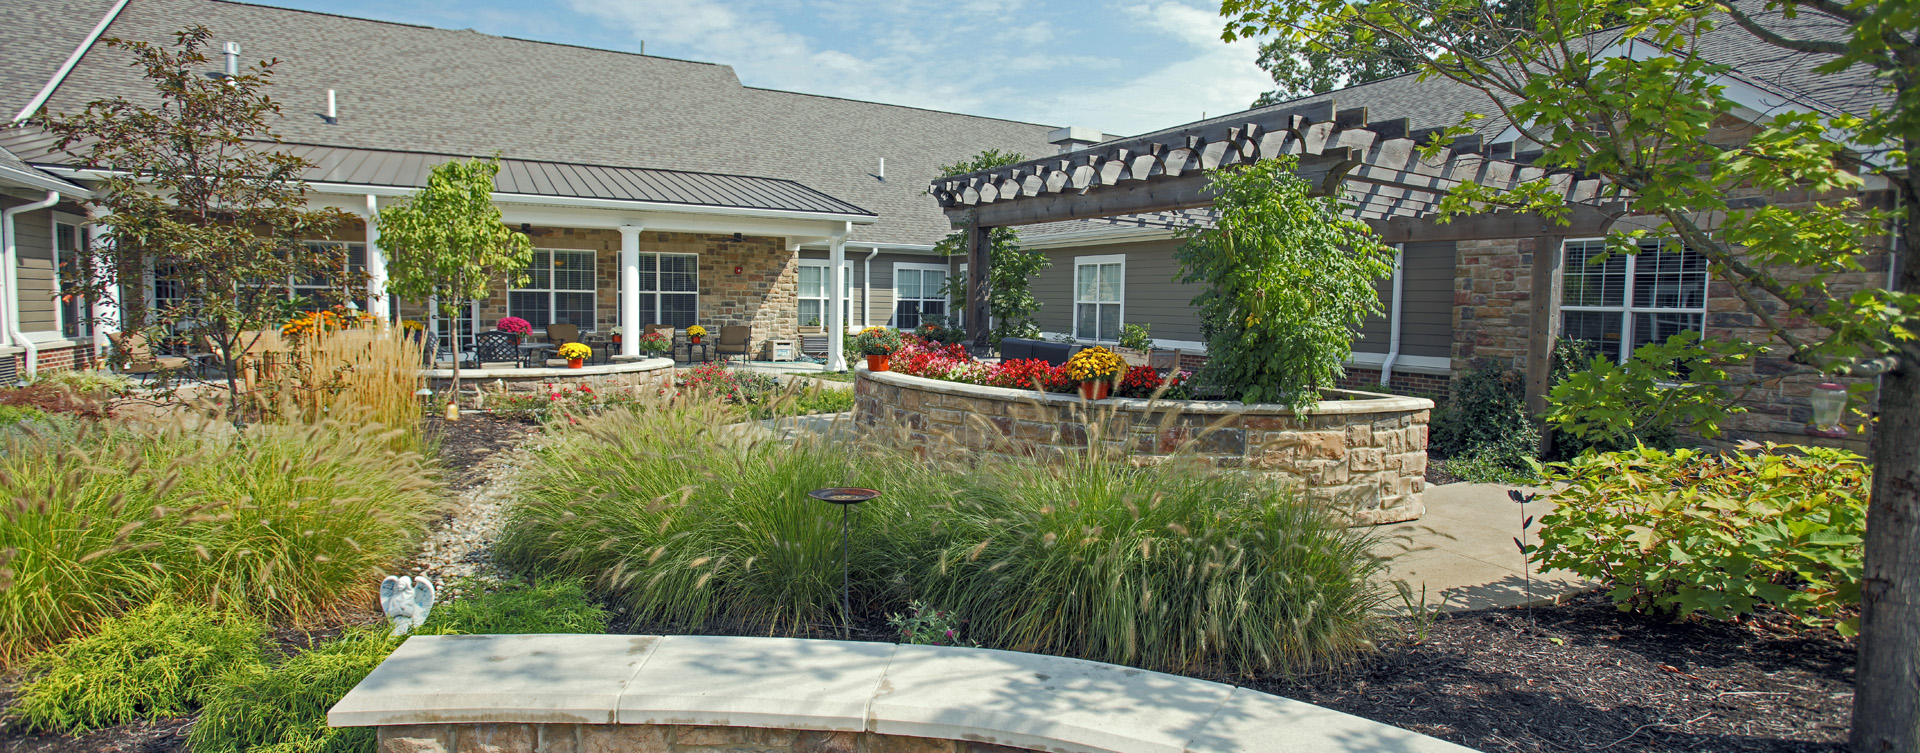 Enjoy the outdoors in a whole new light by stepping into our secure courtyard at Bickford of Carmel